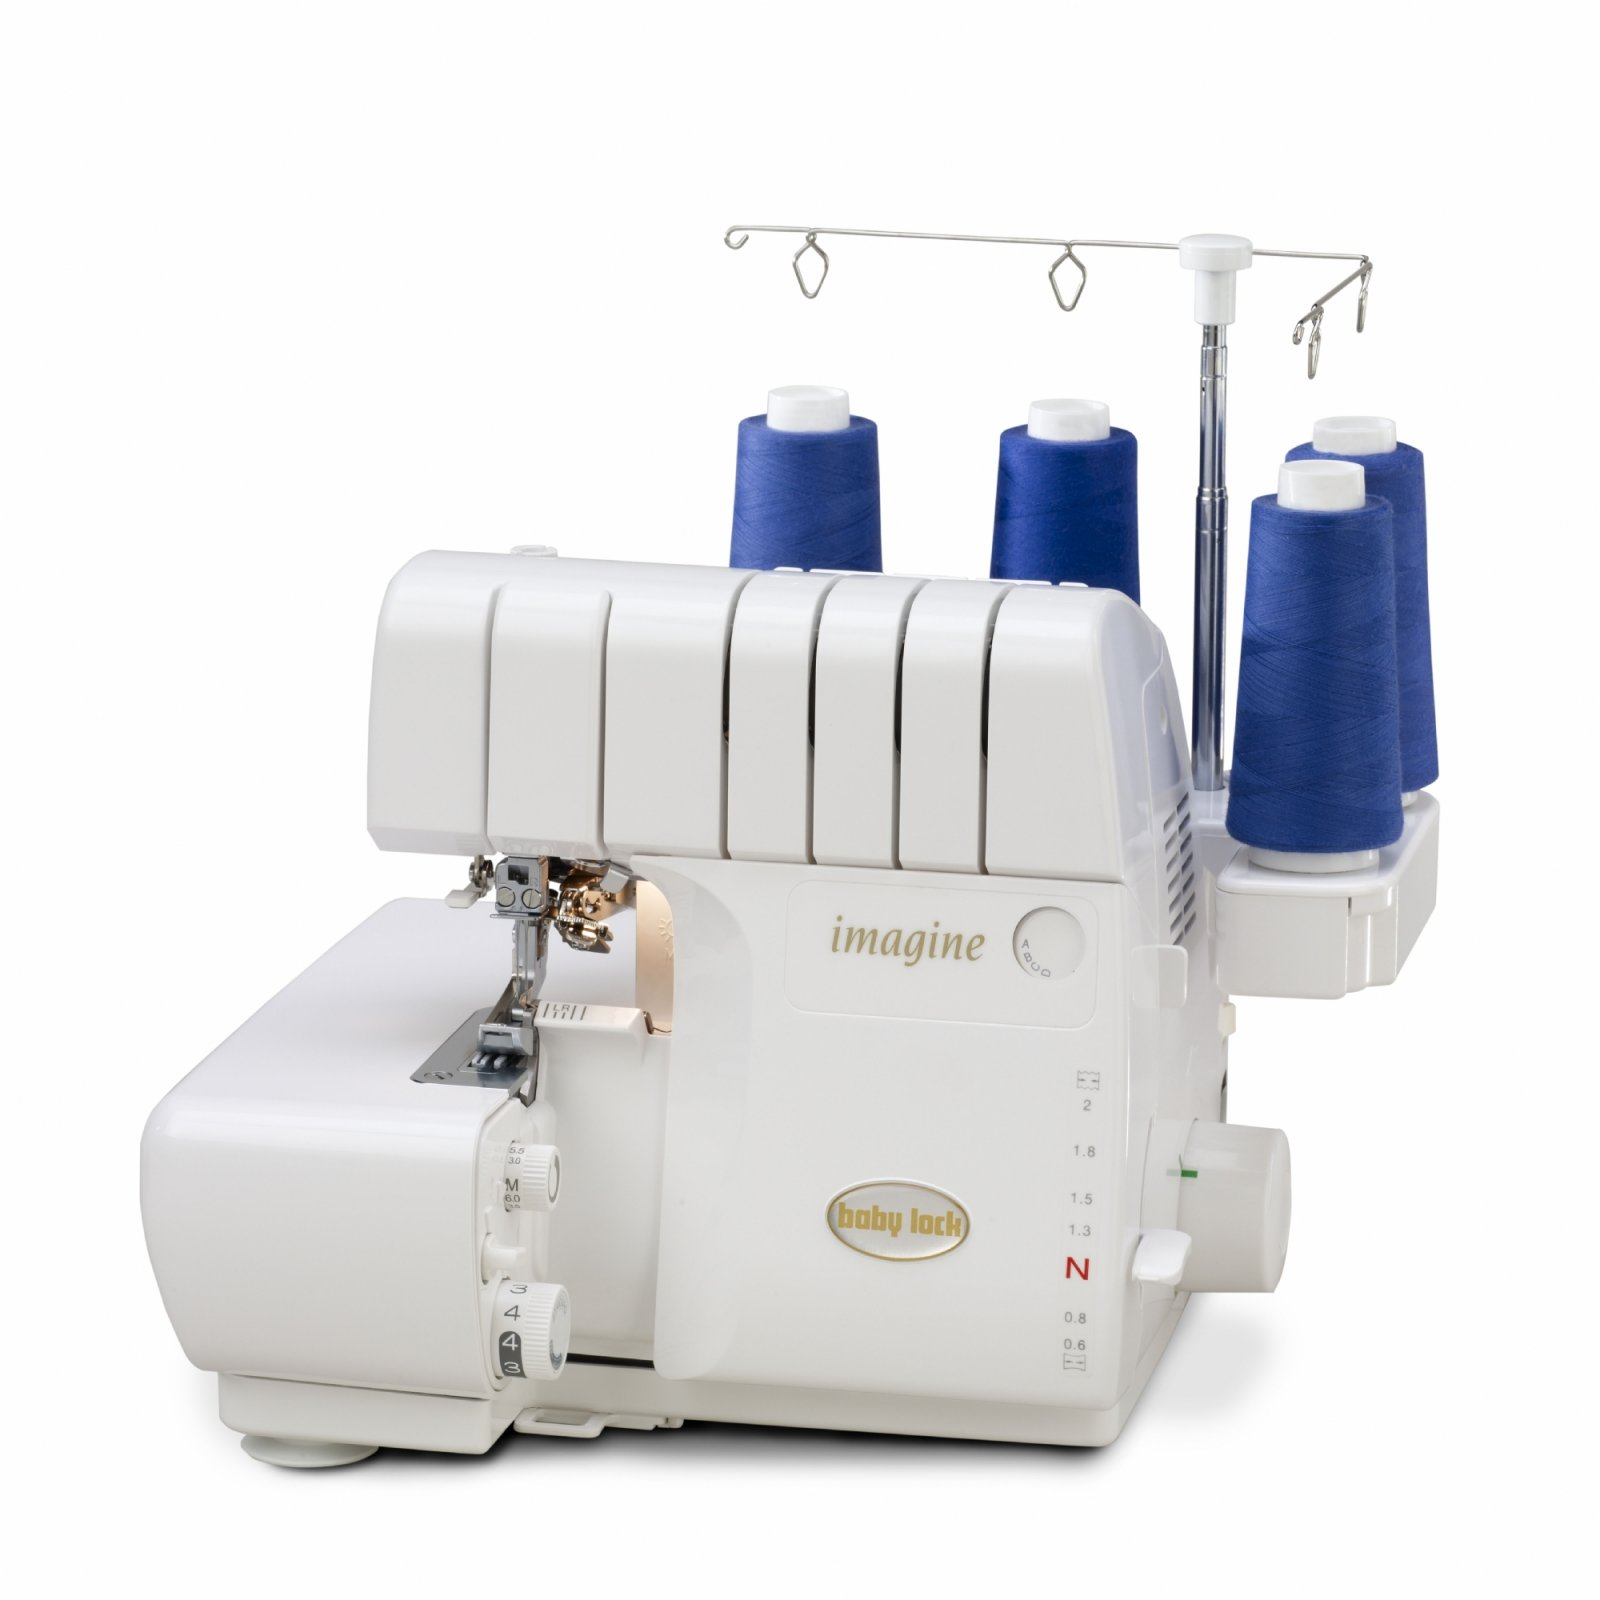 Pre-Loved Imagine Serger